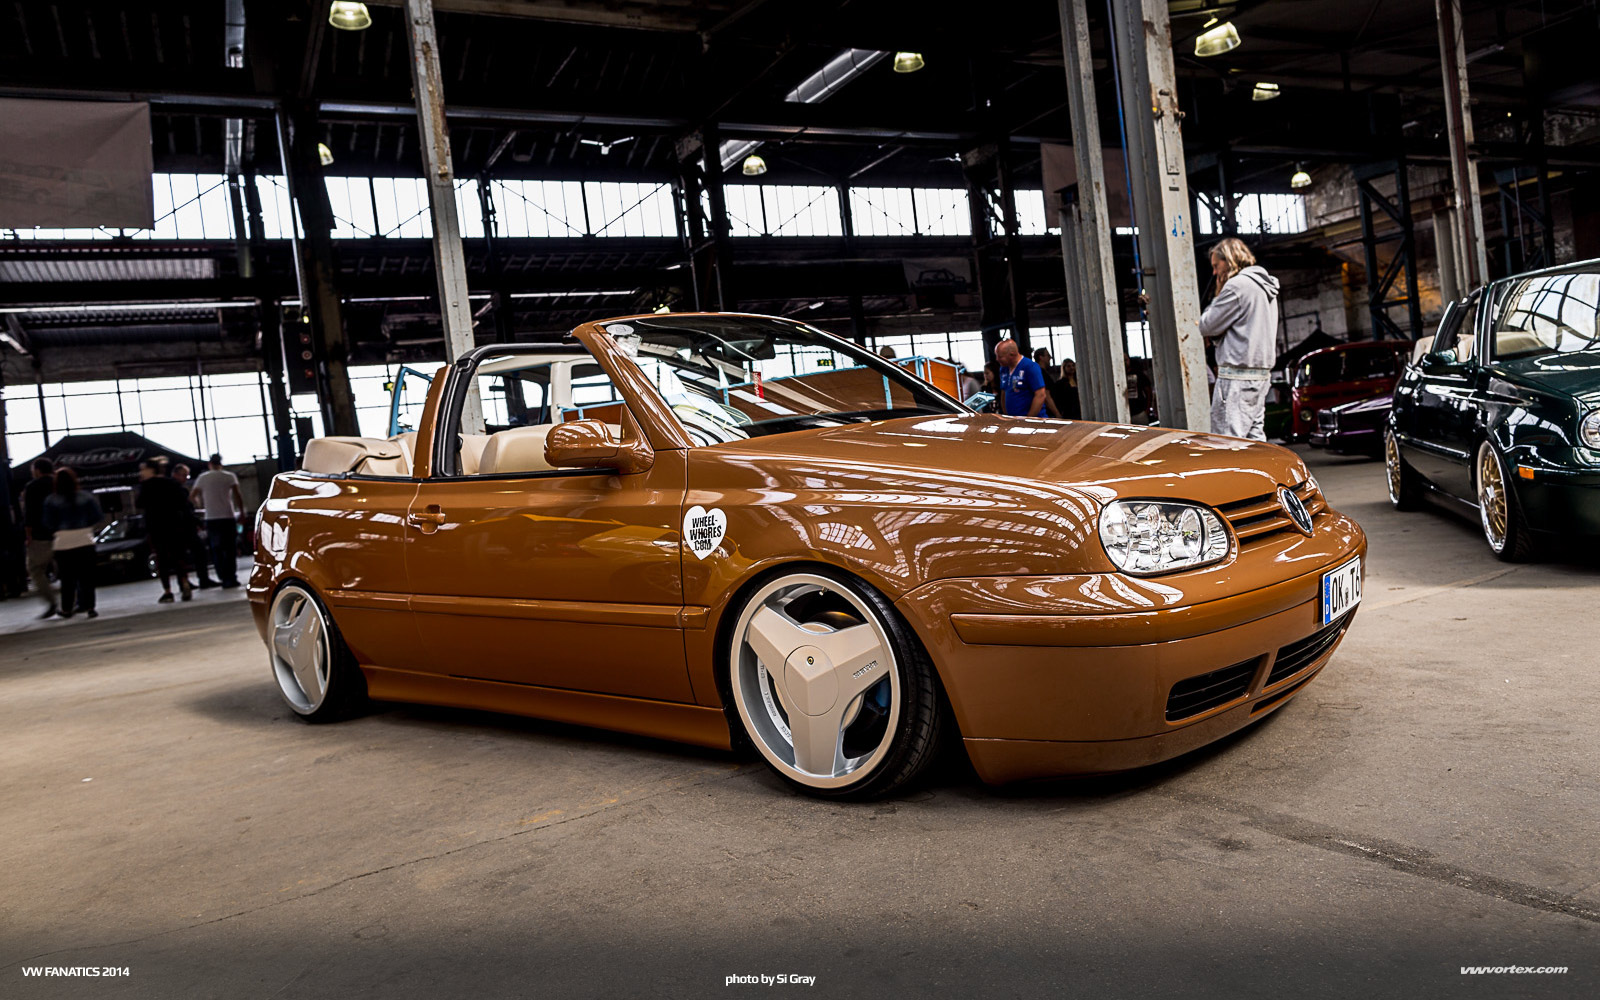 VWFanatics-2014-Si-Gray-395